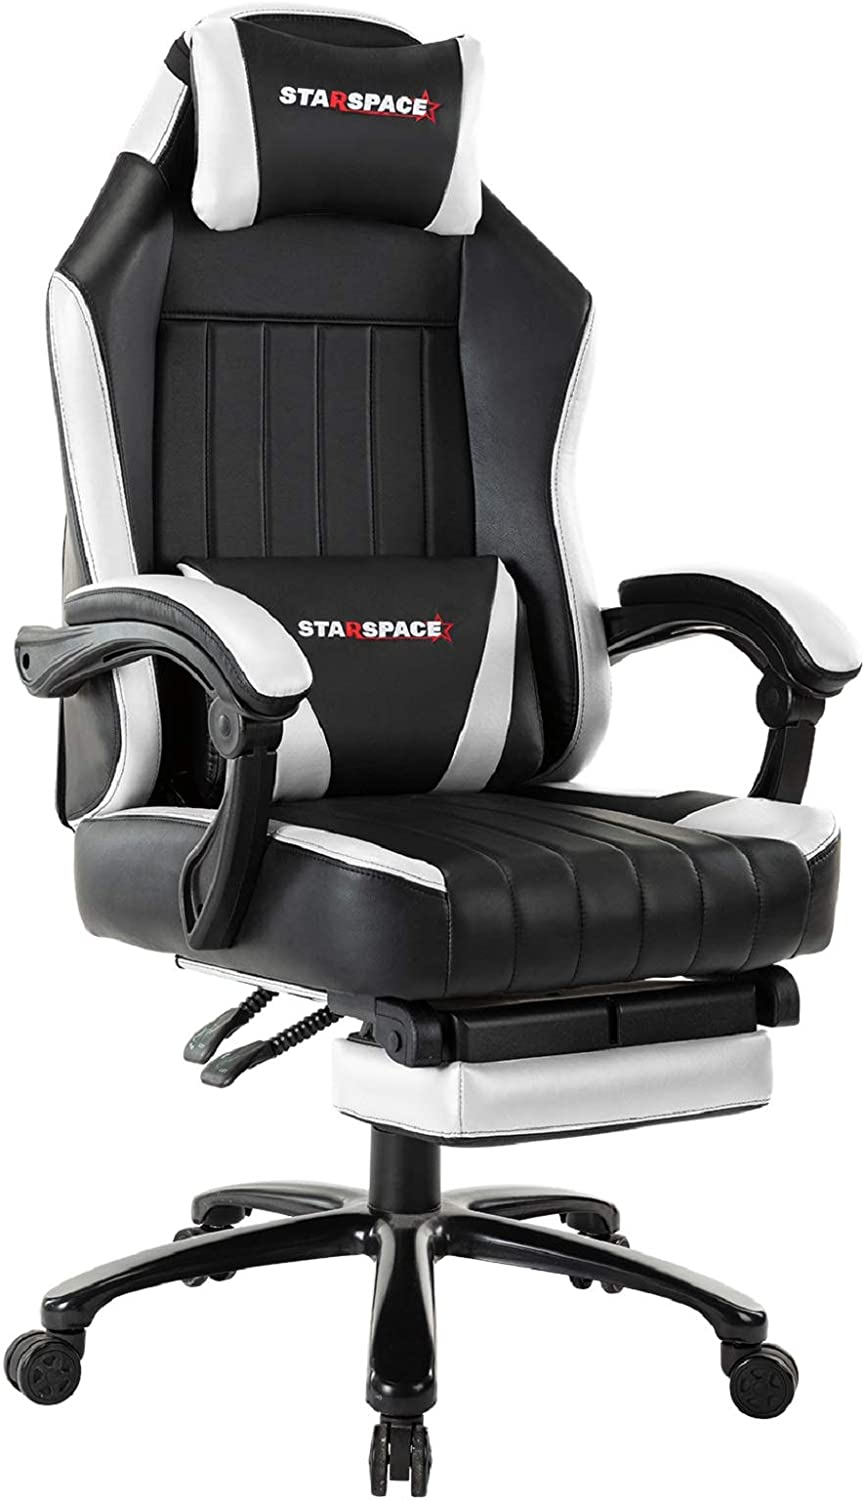 STARSPACE Big & Tall 350lb Gaming Chair Massage- Retractable Footrest Metal Base High Back Reclining Racing Executive Computer Desk Office Chair Adjustable Back Angle (White)